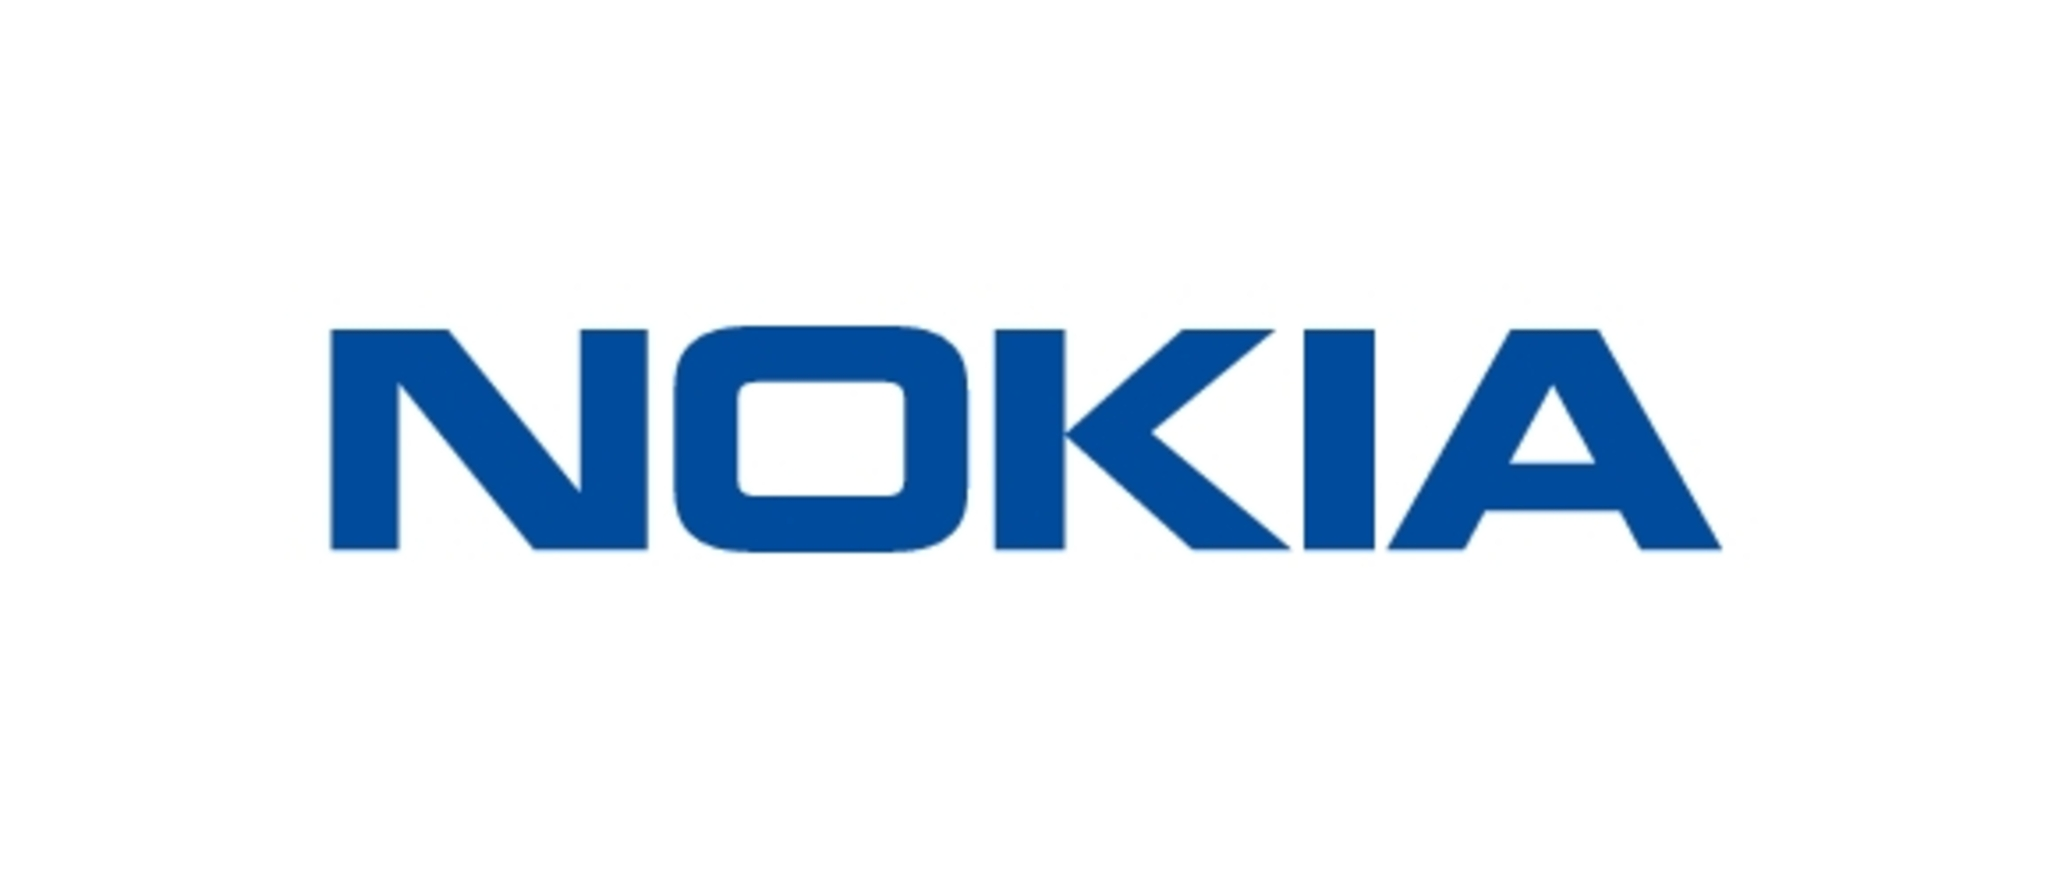 Nokia mit Event am 19. April – Thema unbekannt.